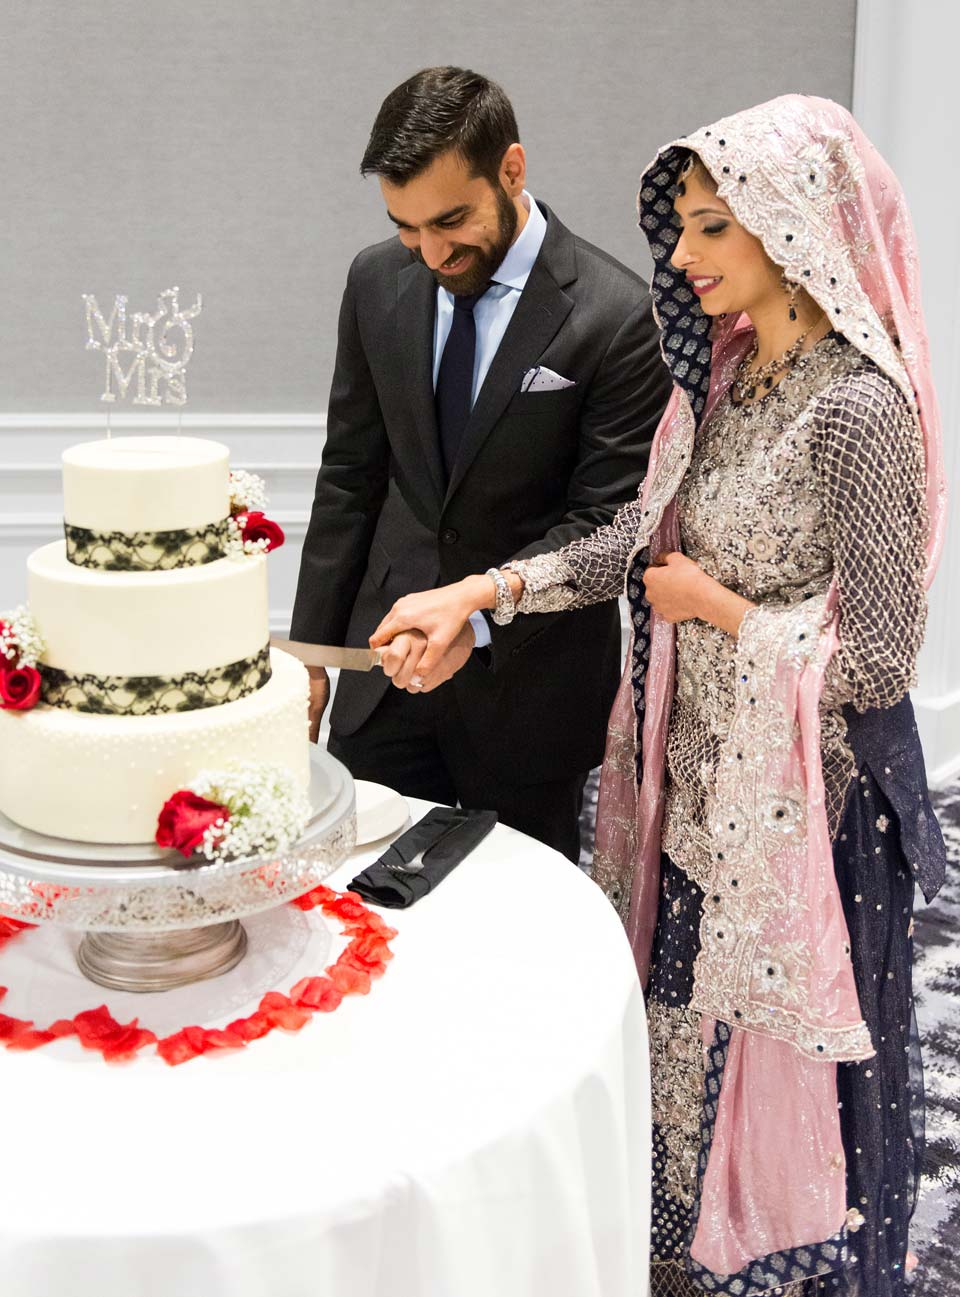 Hammad and Aneela cutting the cake.